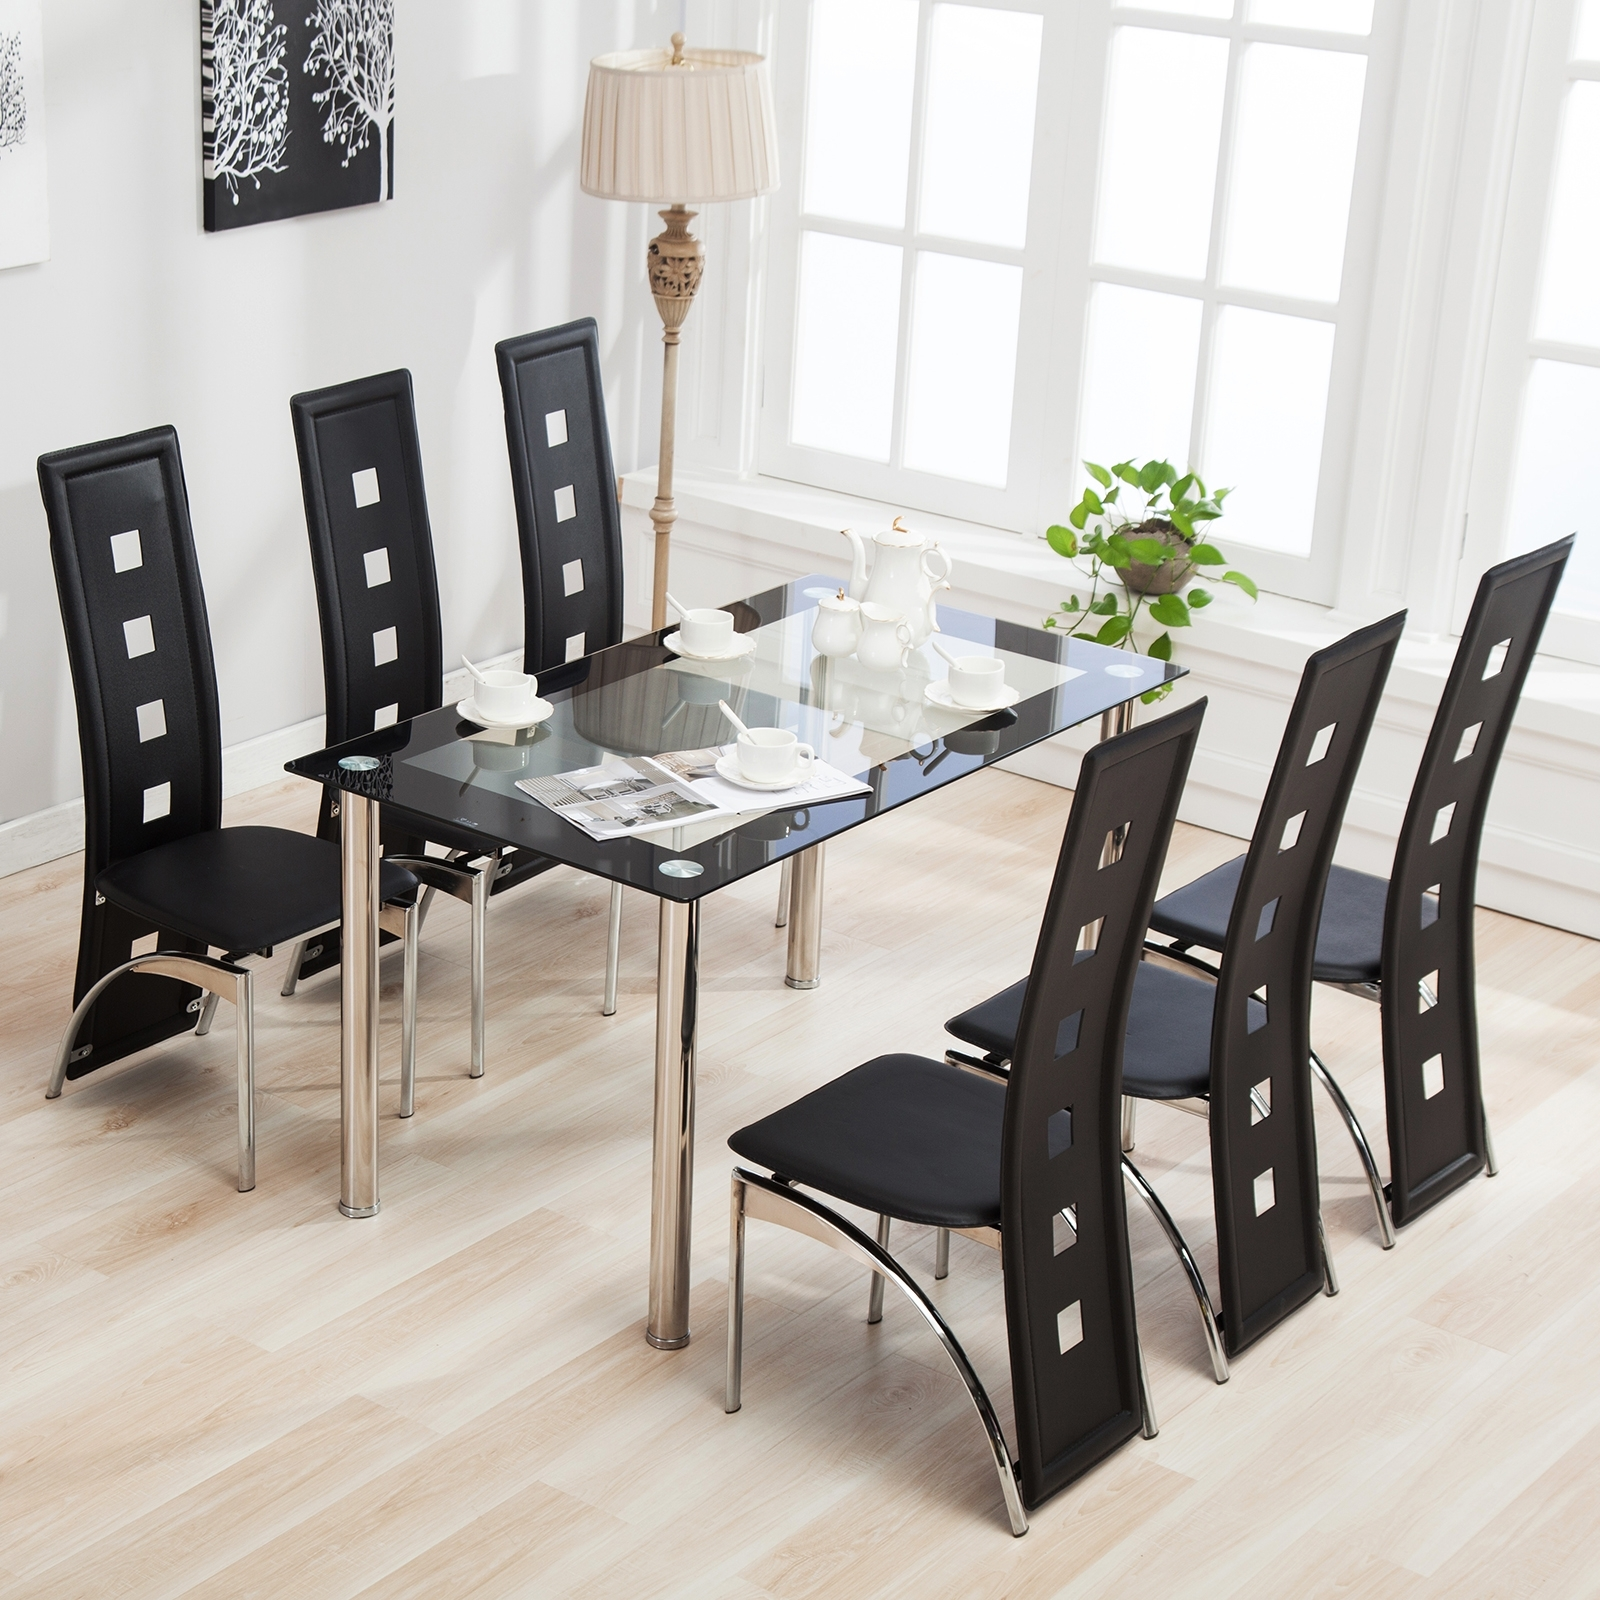 Preferred Mecor 7Pcs Dining Table Set 6 Chairs Glass Metal Kitchen Room Regarding Black Glass Dining Tables With 6 Chairs (View 20 of 25)